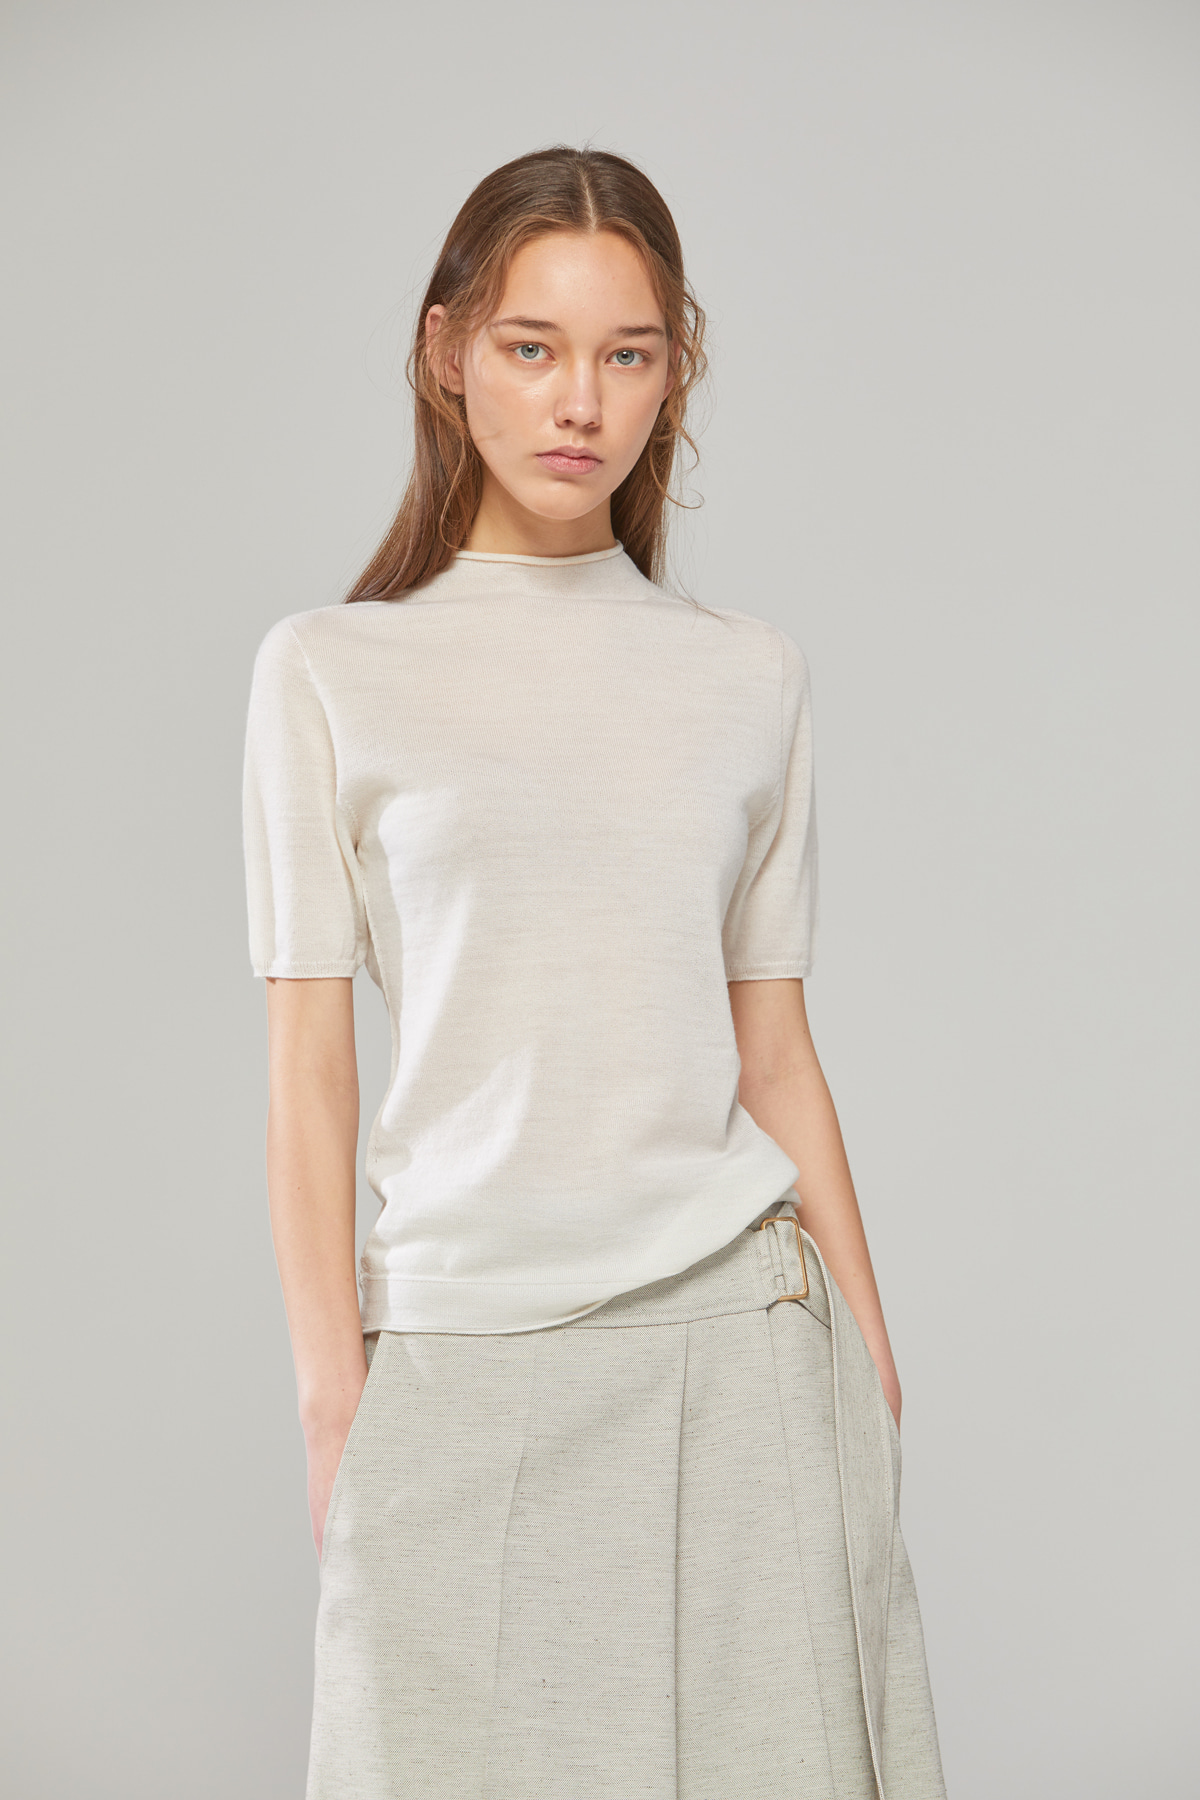 DEMERE 100% WOOL HALF-SLEEVED KNIT (IVORY)